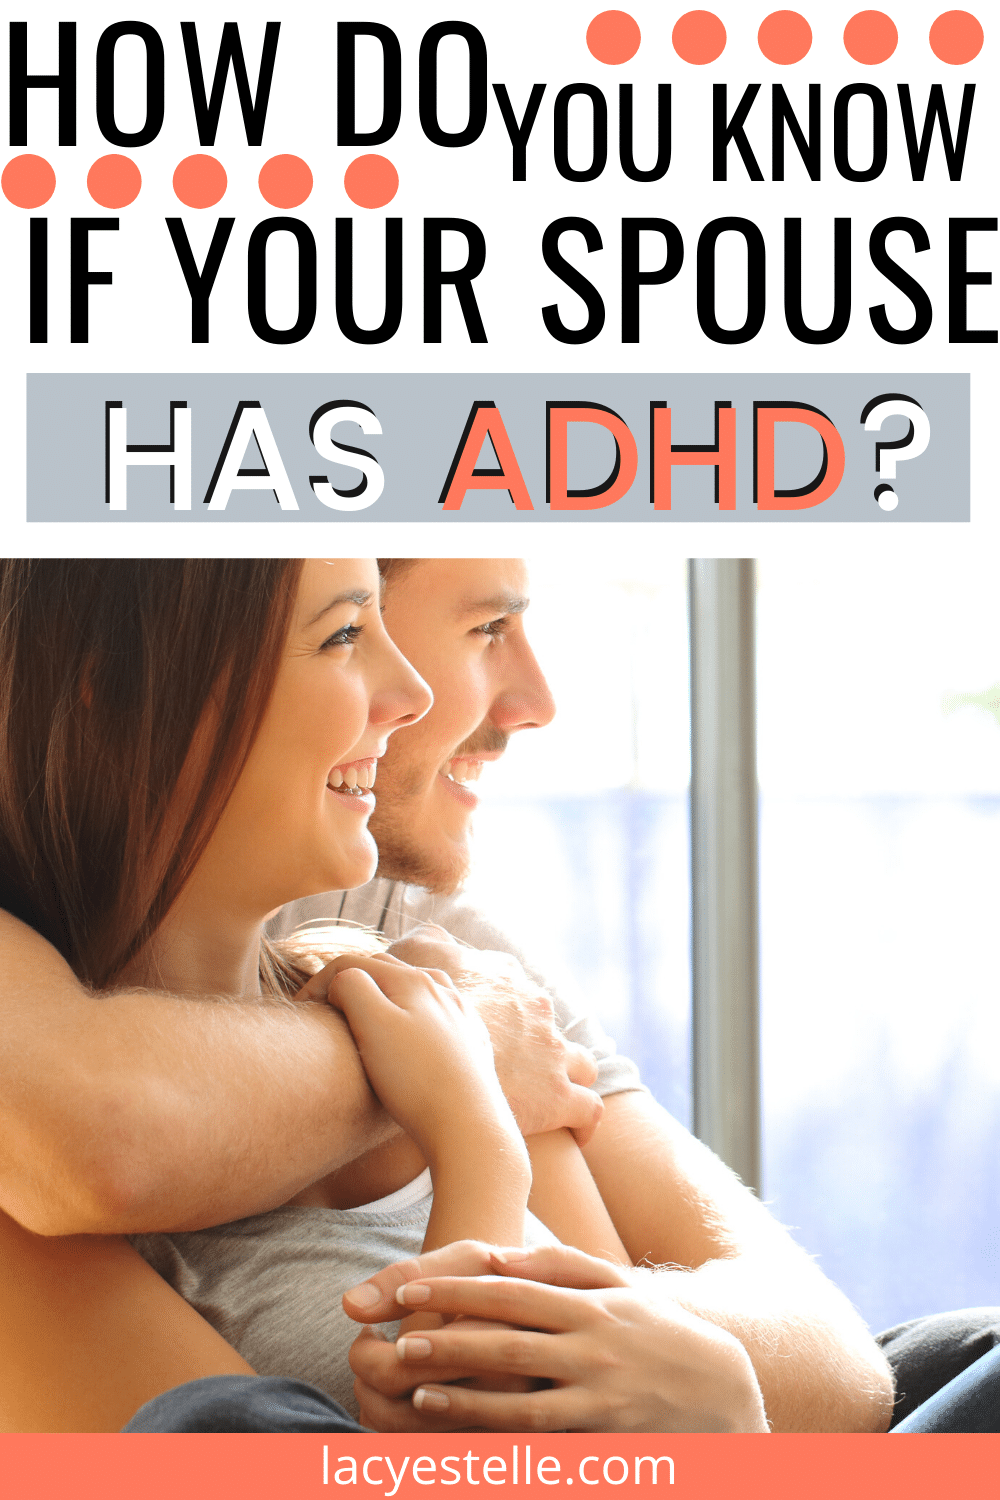 How do you know if your spouse has ADHD? Should they seek a diagnosis? How does ADHD affect your relationship?